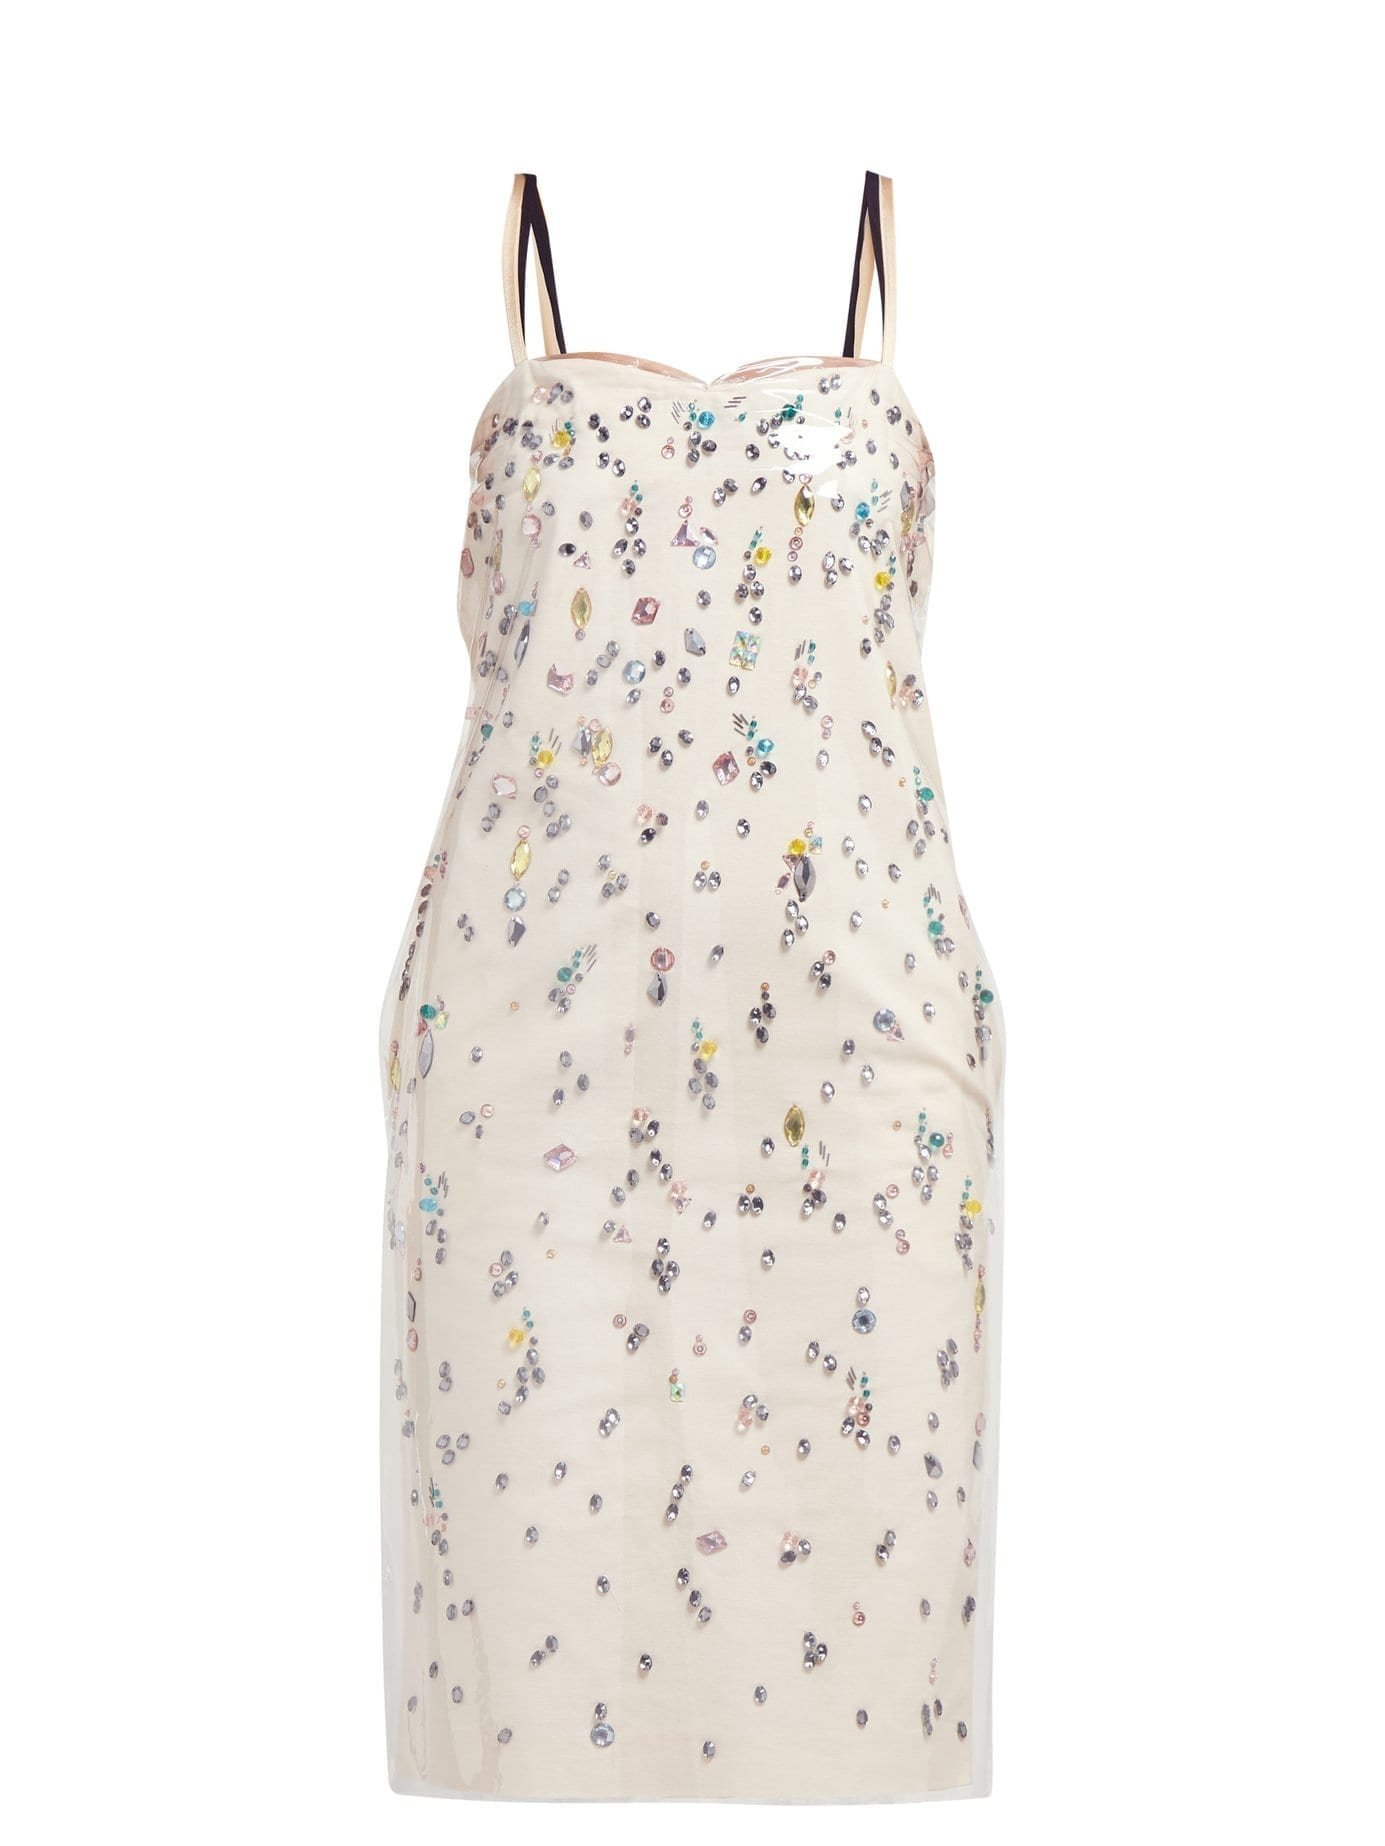 NO. 21 Pvc-layer Crystal-embellished Cotton Cream Dress